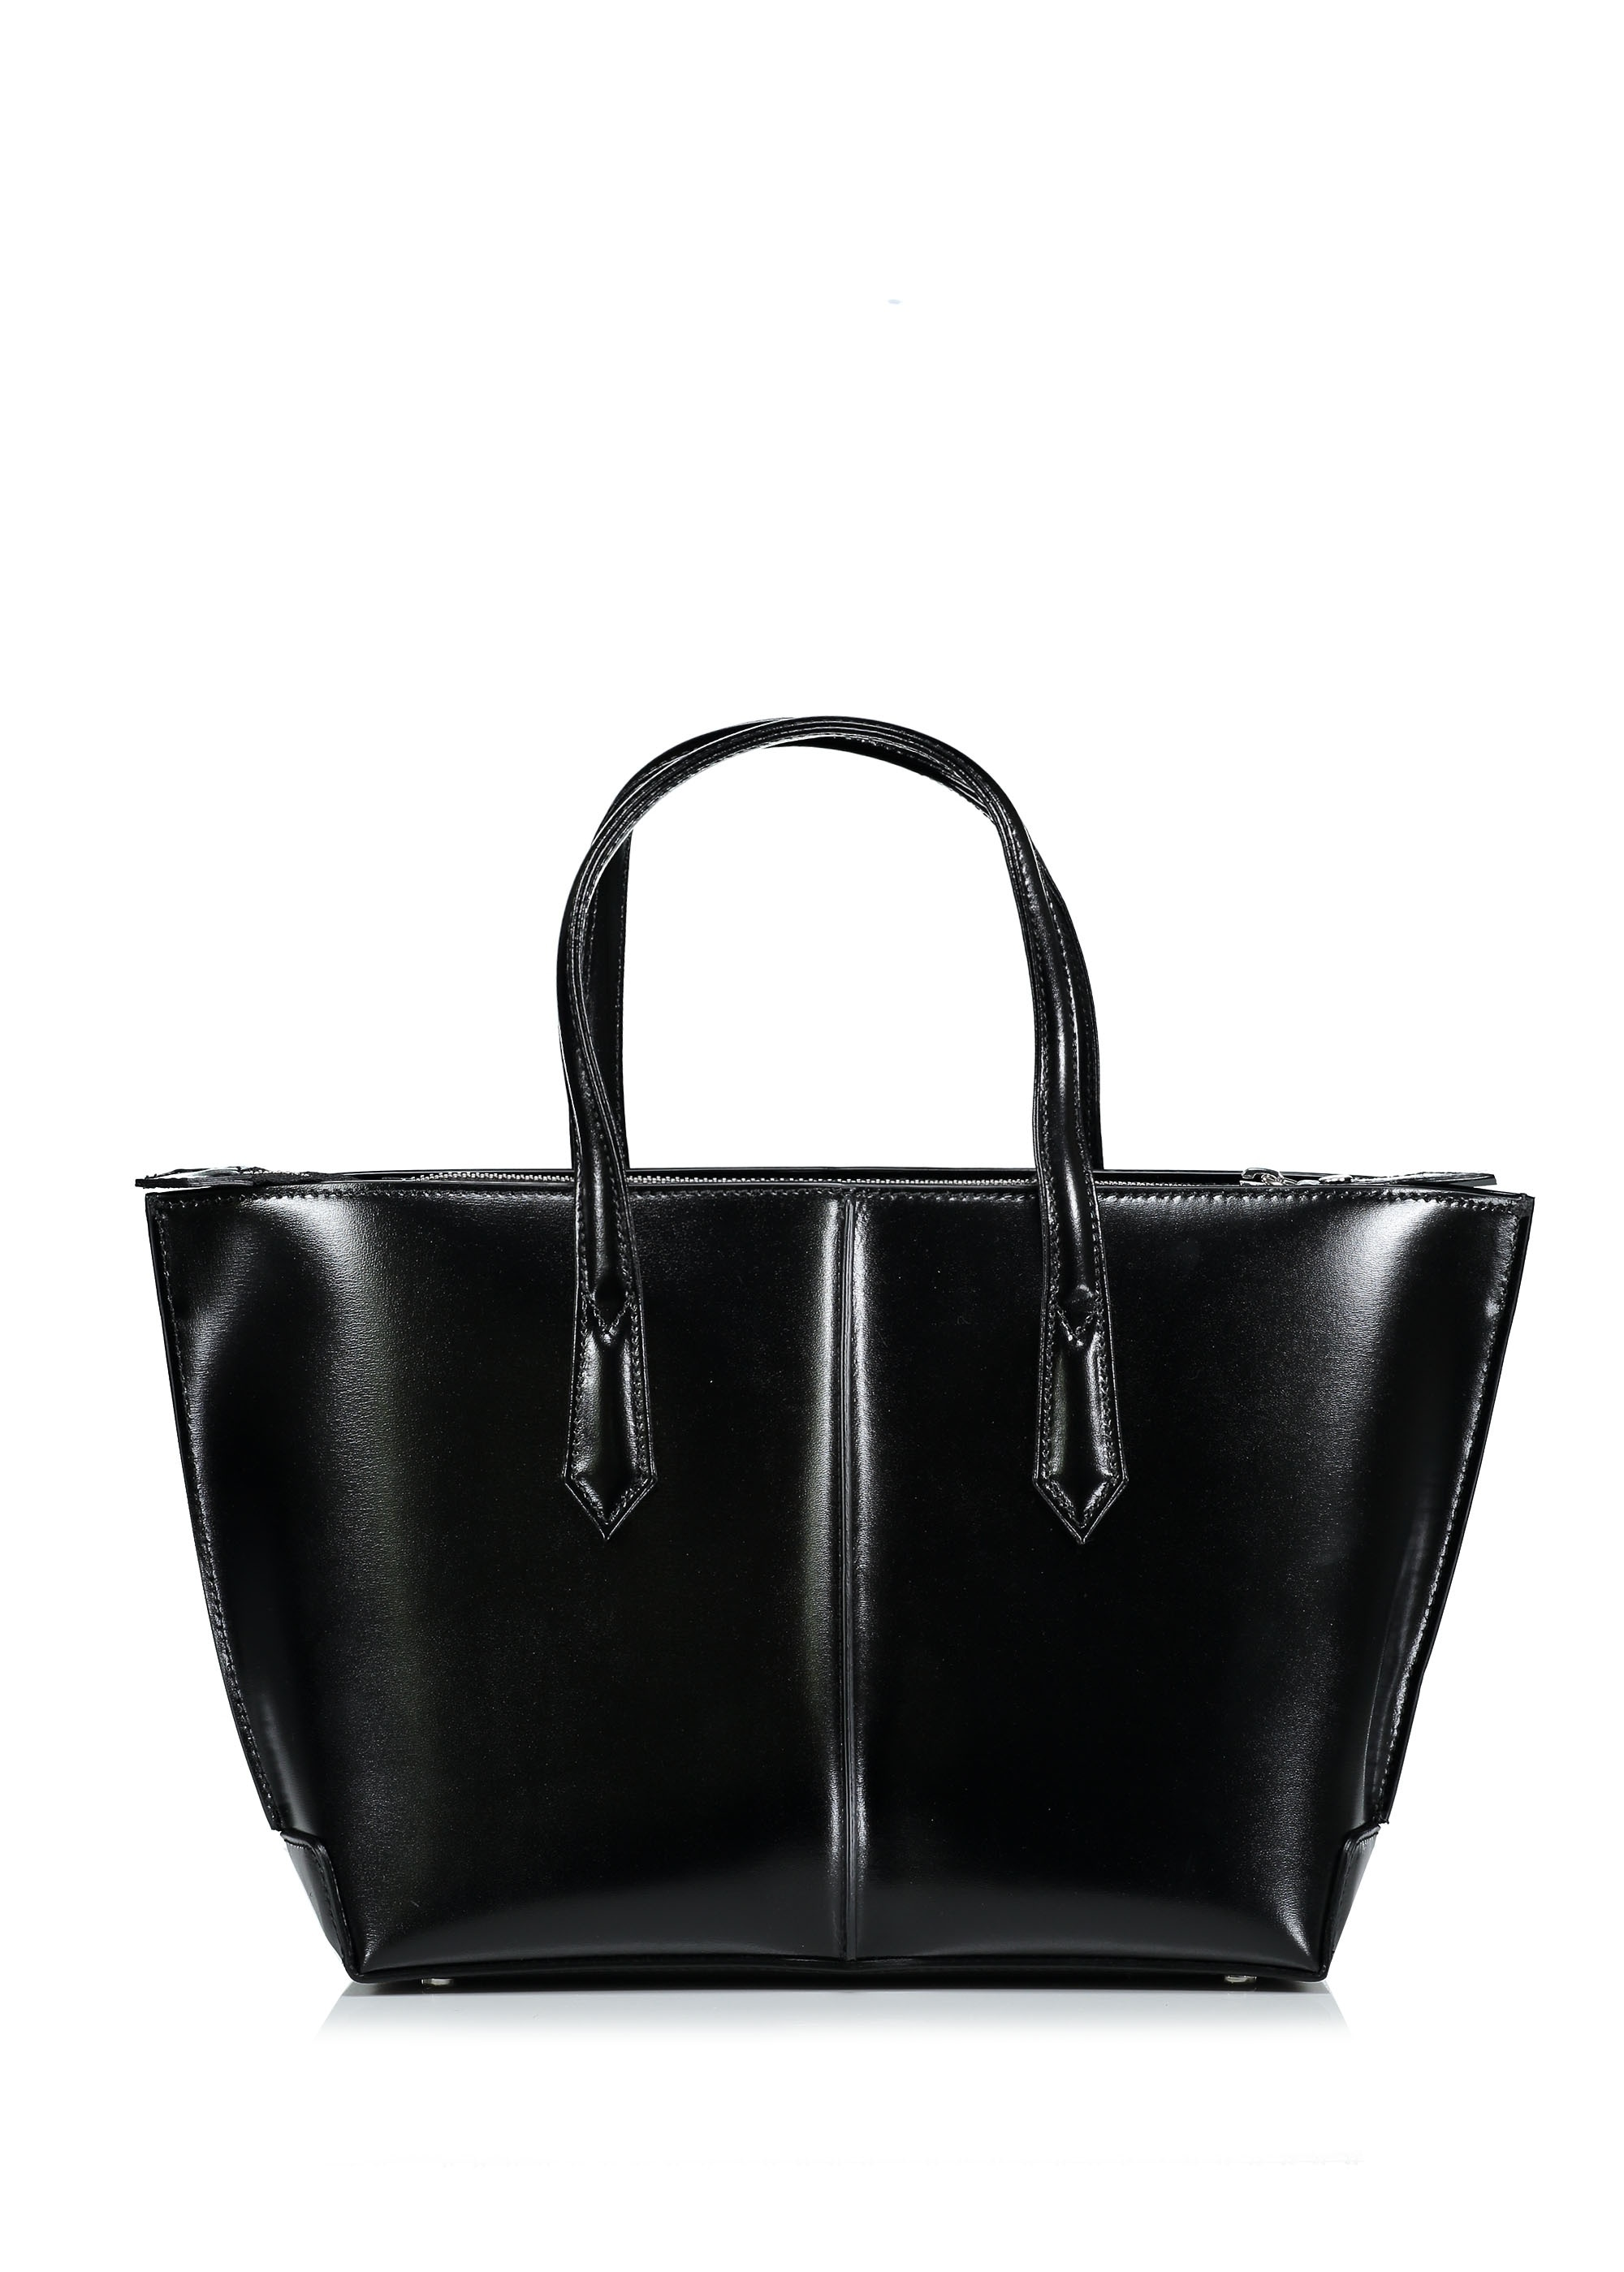 7e0511366e Vivienne Westwood Accessories Sarah Medium Shopper Bag - Black ...